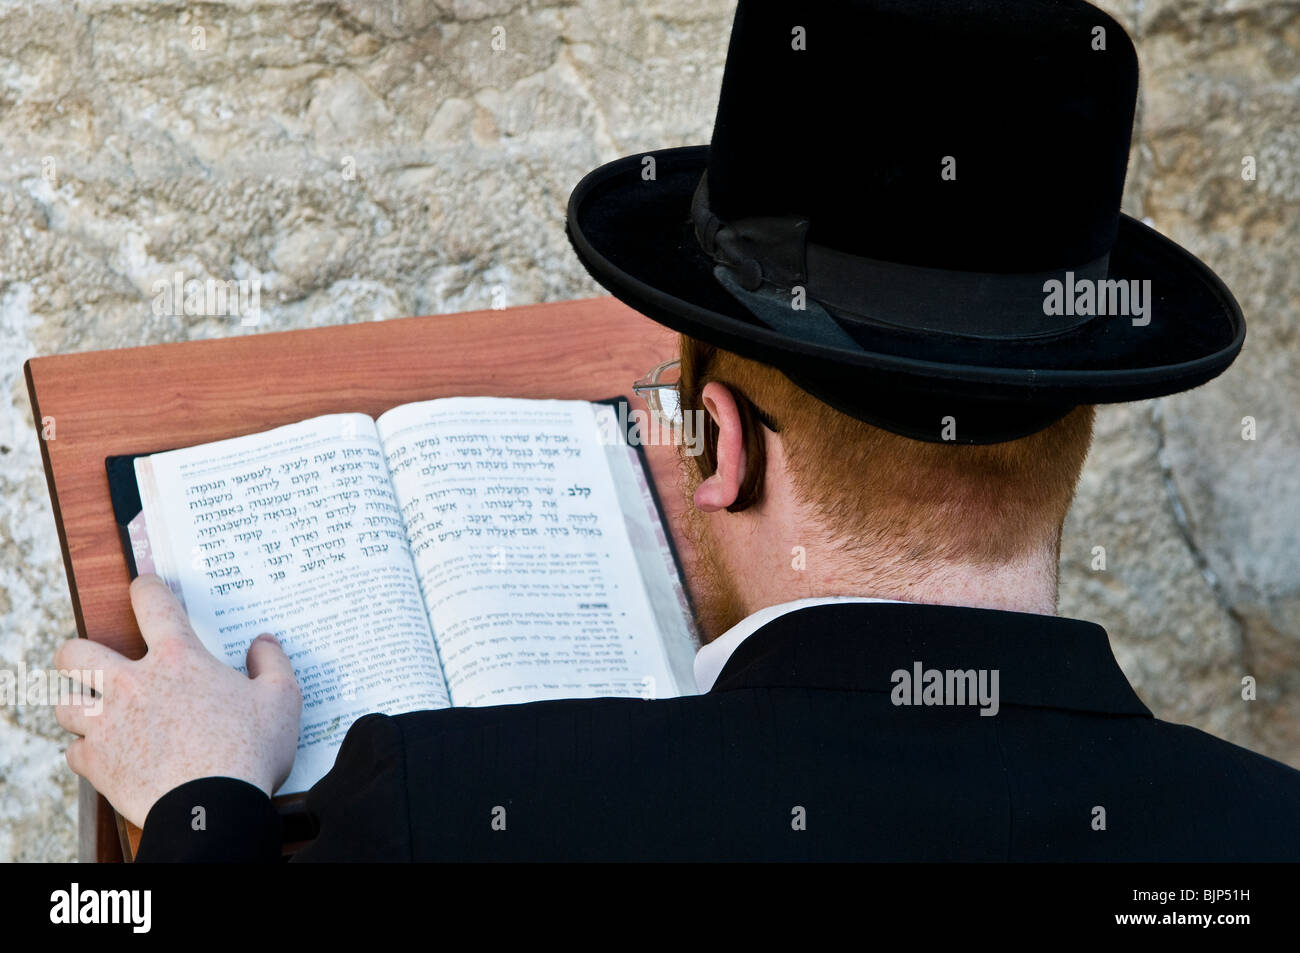 Studying the bible by the wailing wall. - Stock Image